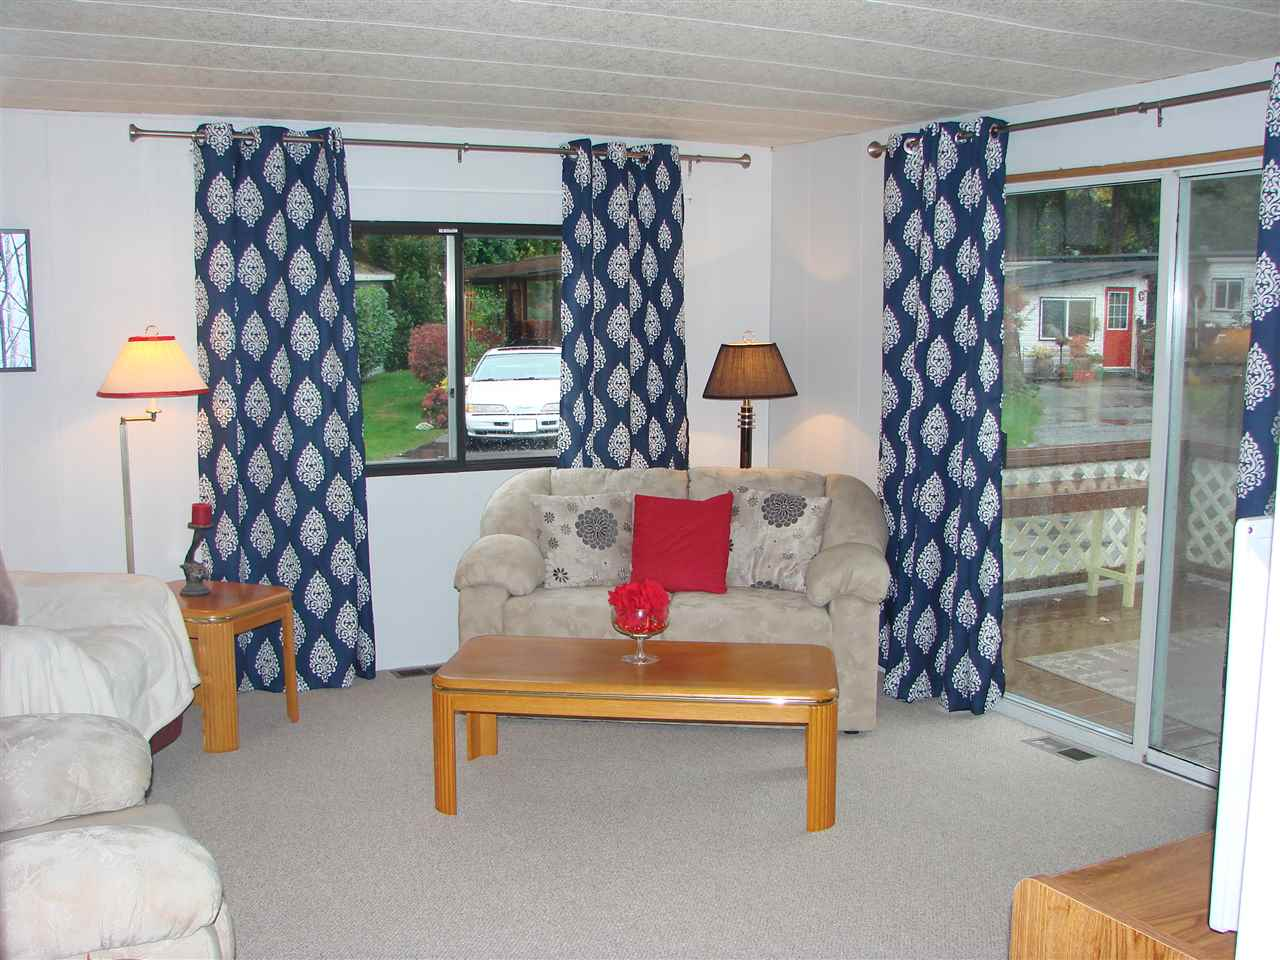 Photo 8: Photos: 25 4496 SUNSHINE COAST Highway in Sechelt: Sechelt District Manufactured Home for sale (Sunshine Coast)  : MLS® # R2217808